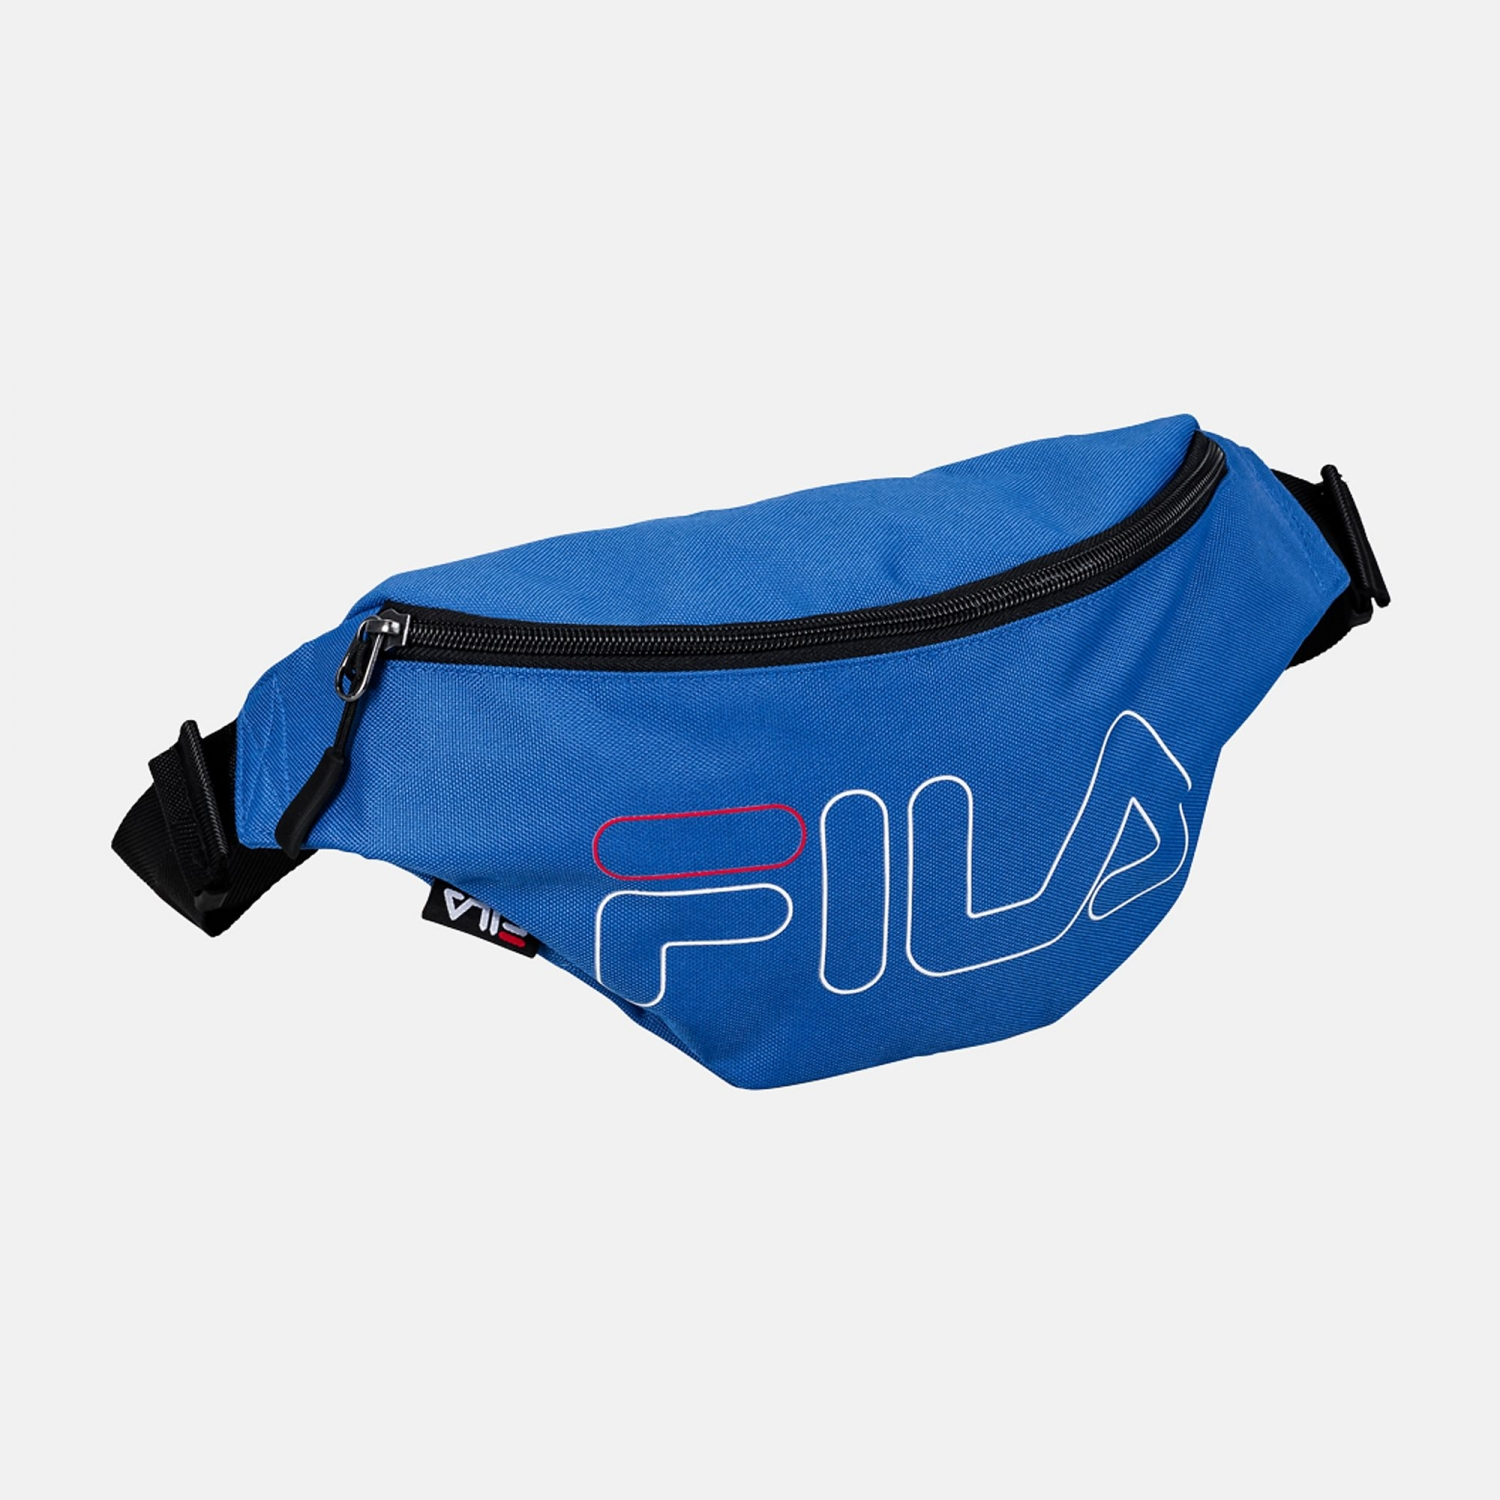 Fila Waistbag Slim Bild 1